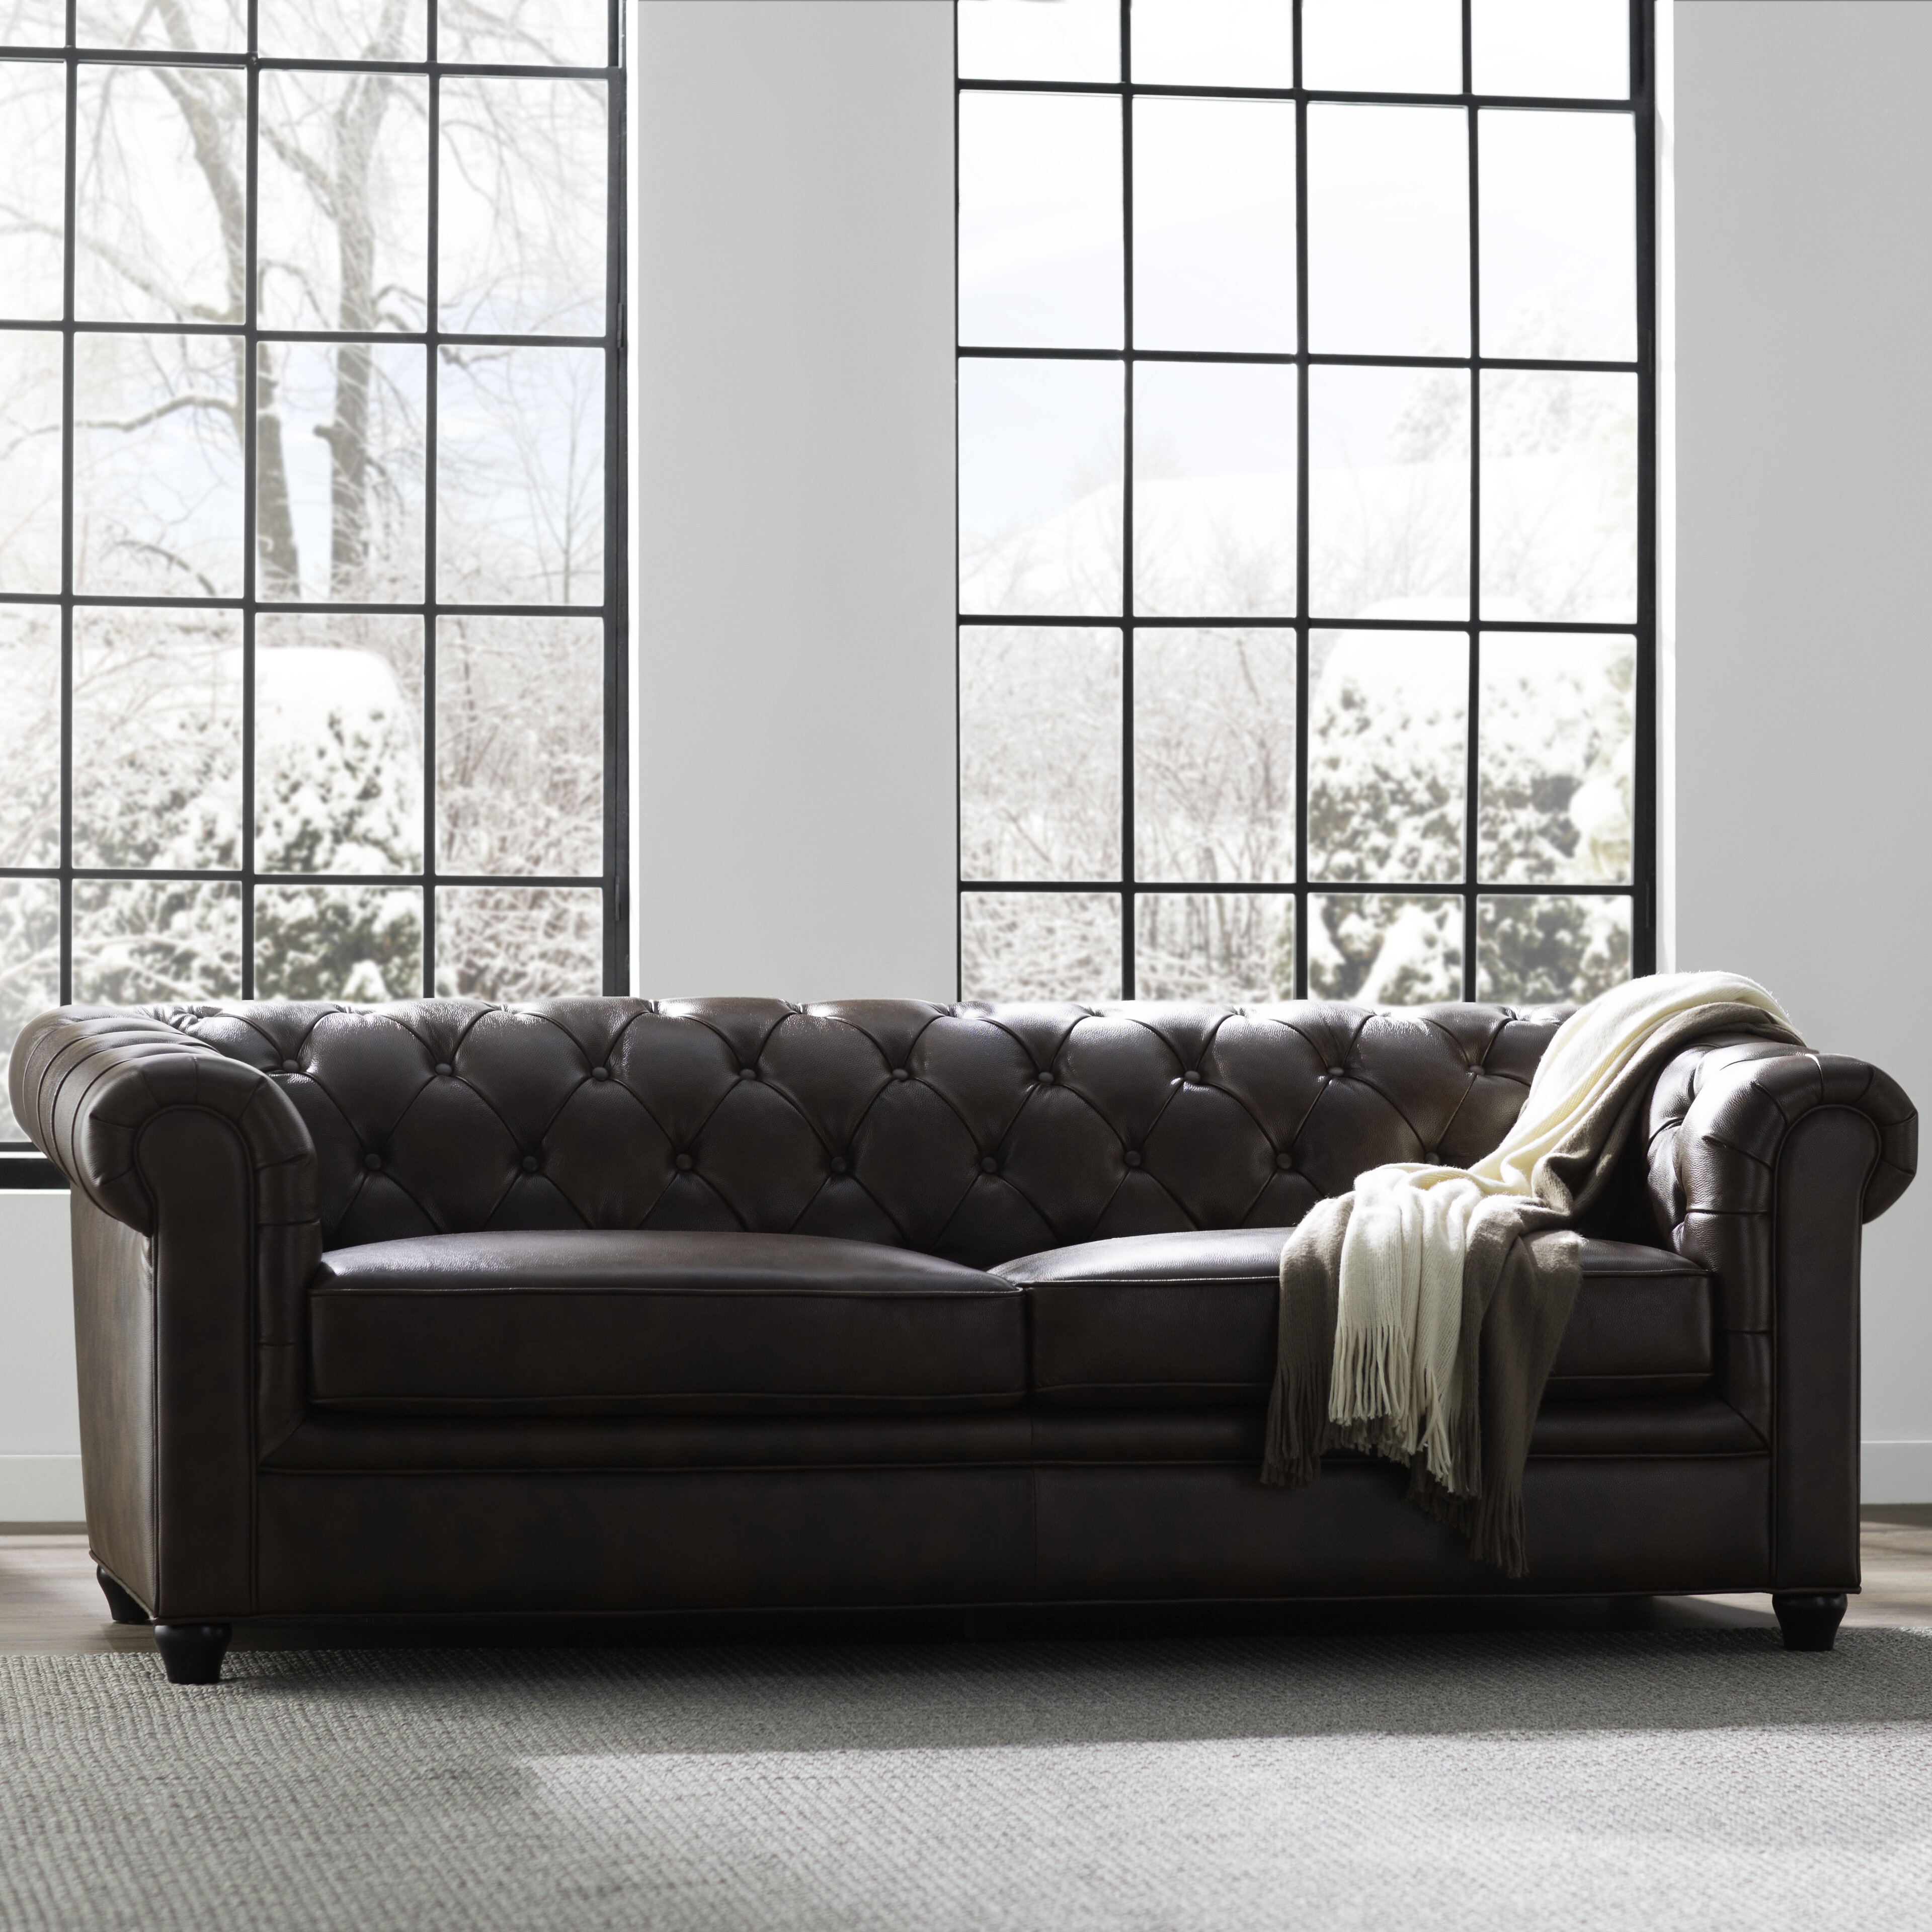 Superb Harlem Leather Chesterfield Sofa Interior Design Ideas Tzicisoteloinfo